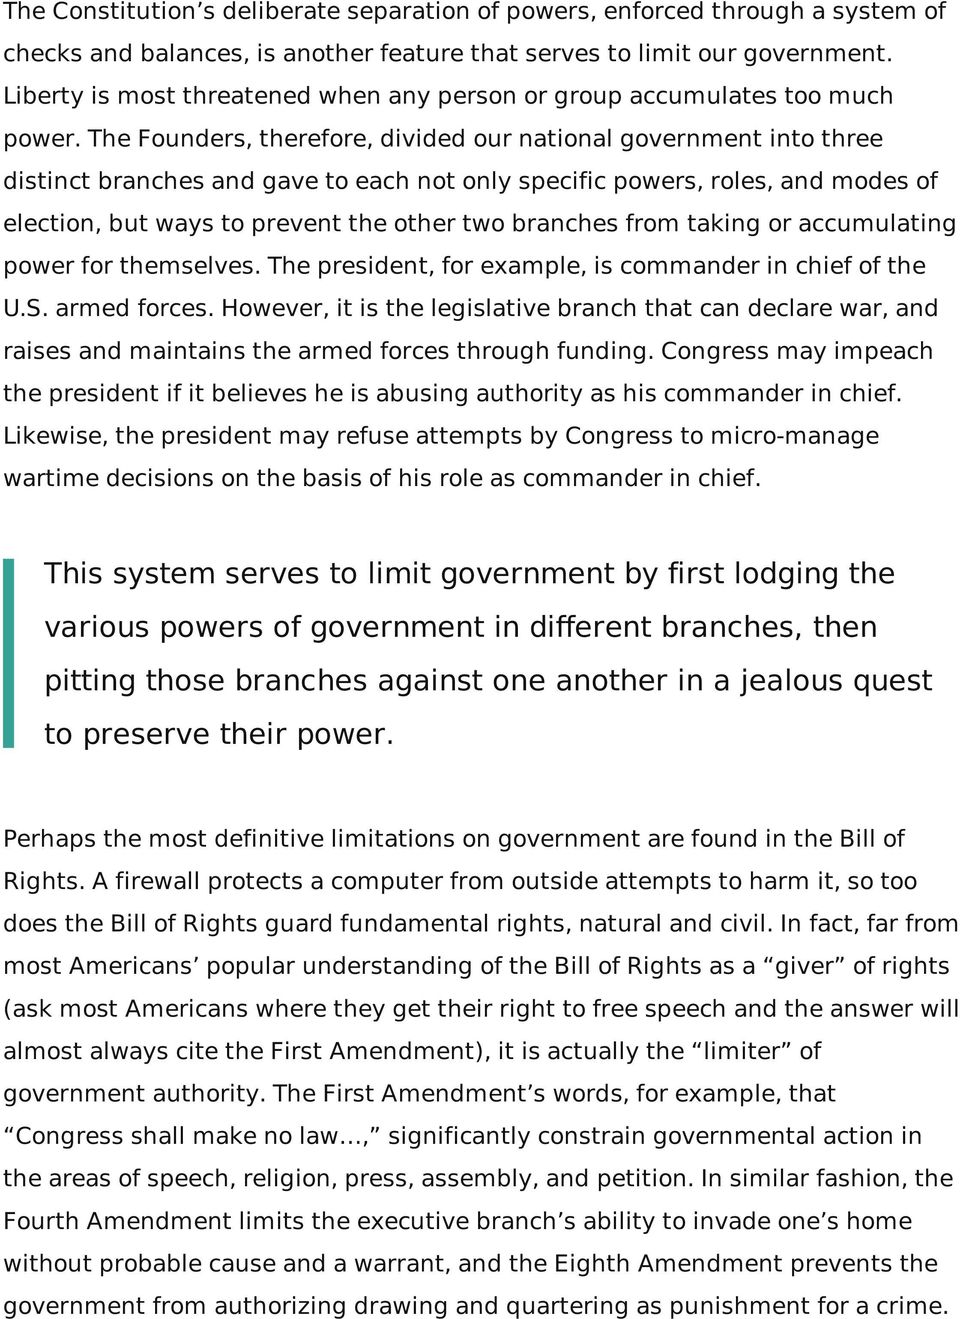 The Founders, therefore, divided our national government into three distinct branches and gave to each not only specific powers, roles, and modes of election, but ways to prevent the other two